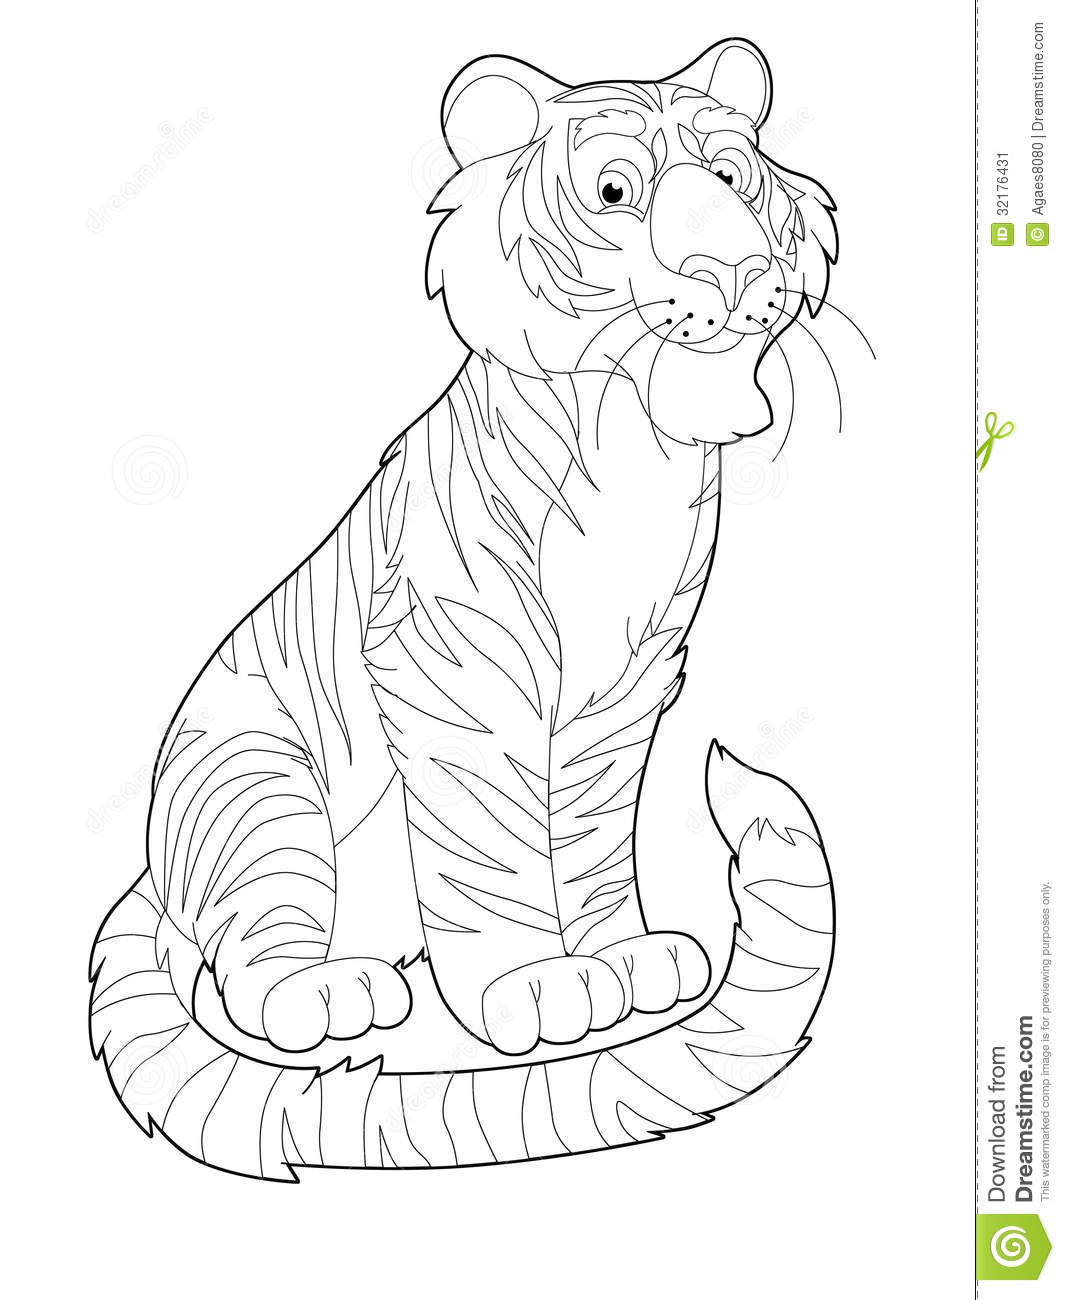 Safari coloring pages to download and print for free for Safari animal coloring pages